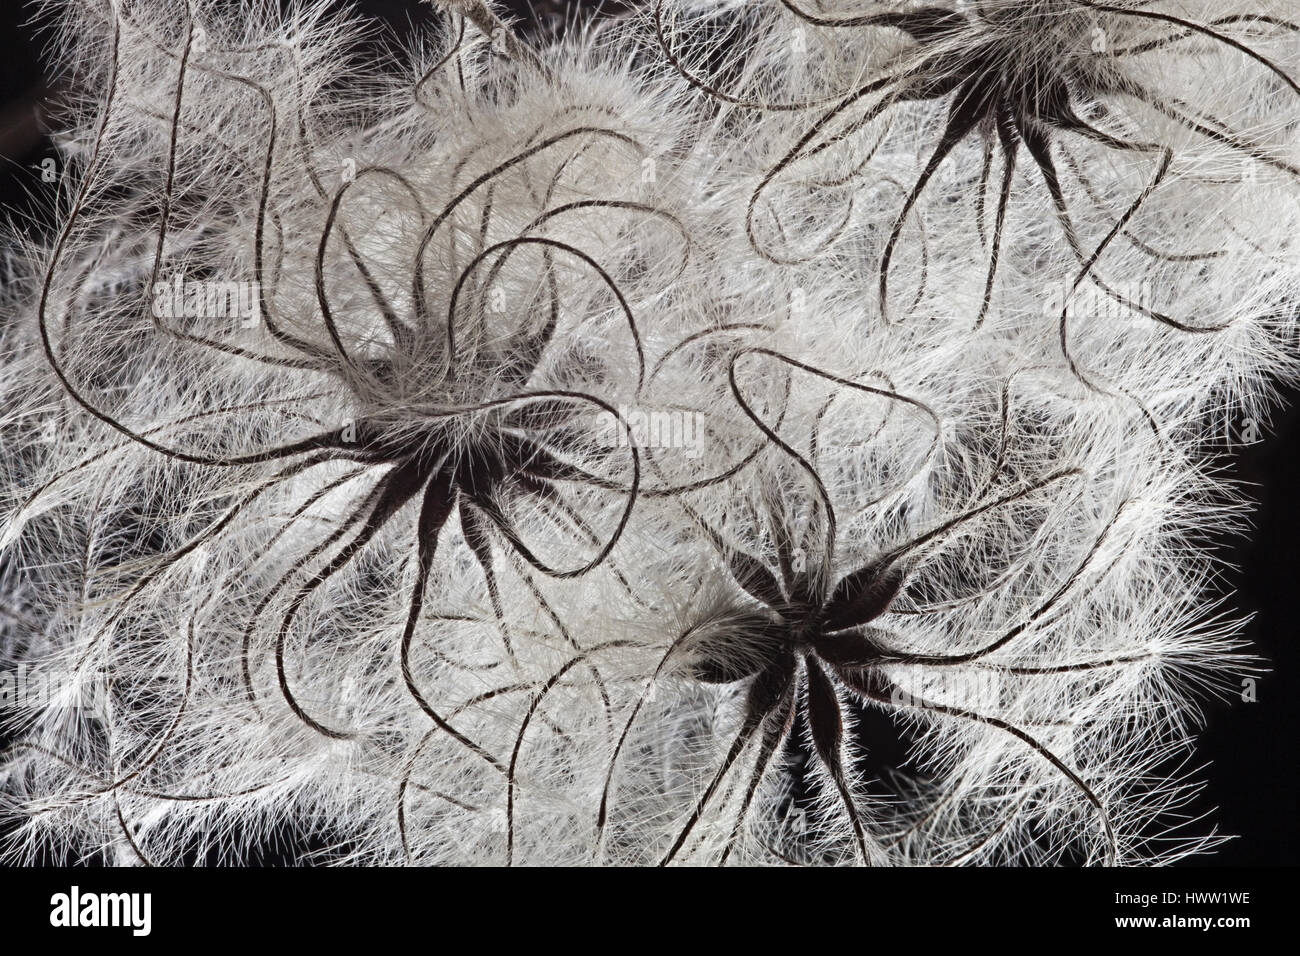 Old Man's Beard - close up seed dispersal detail - Stock Image